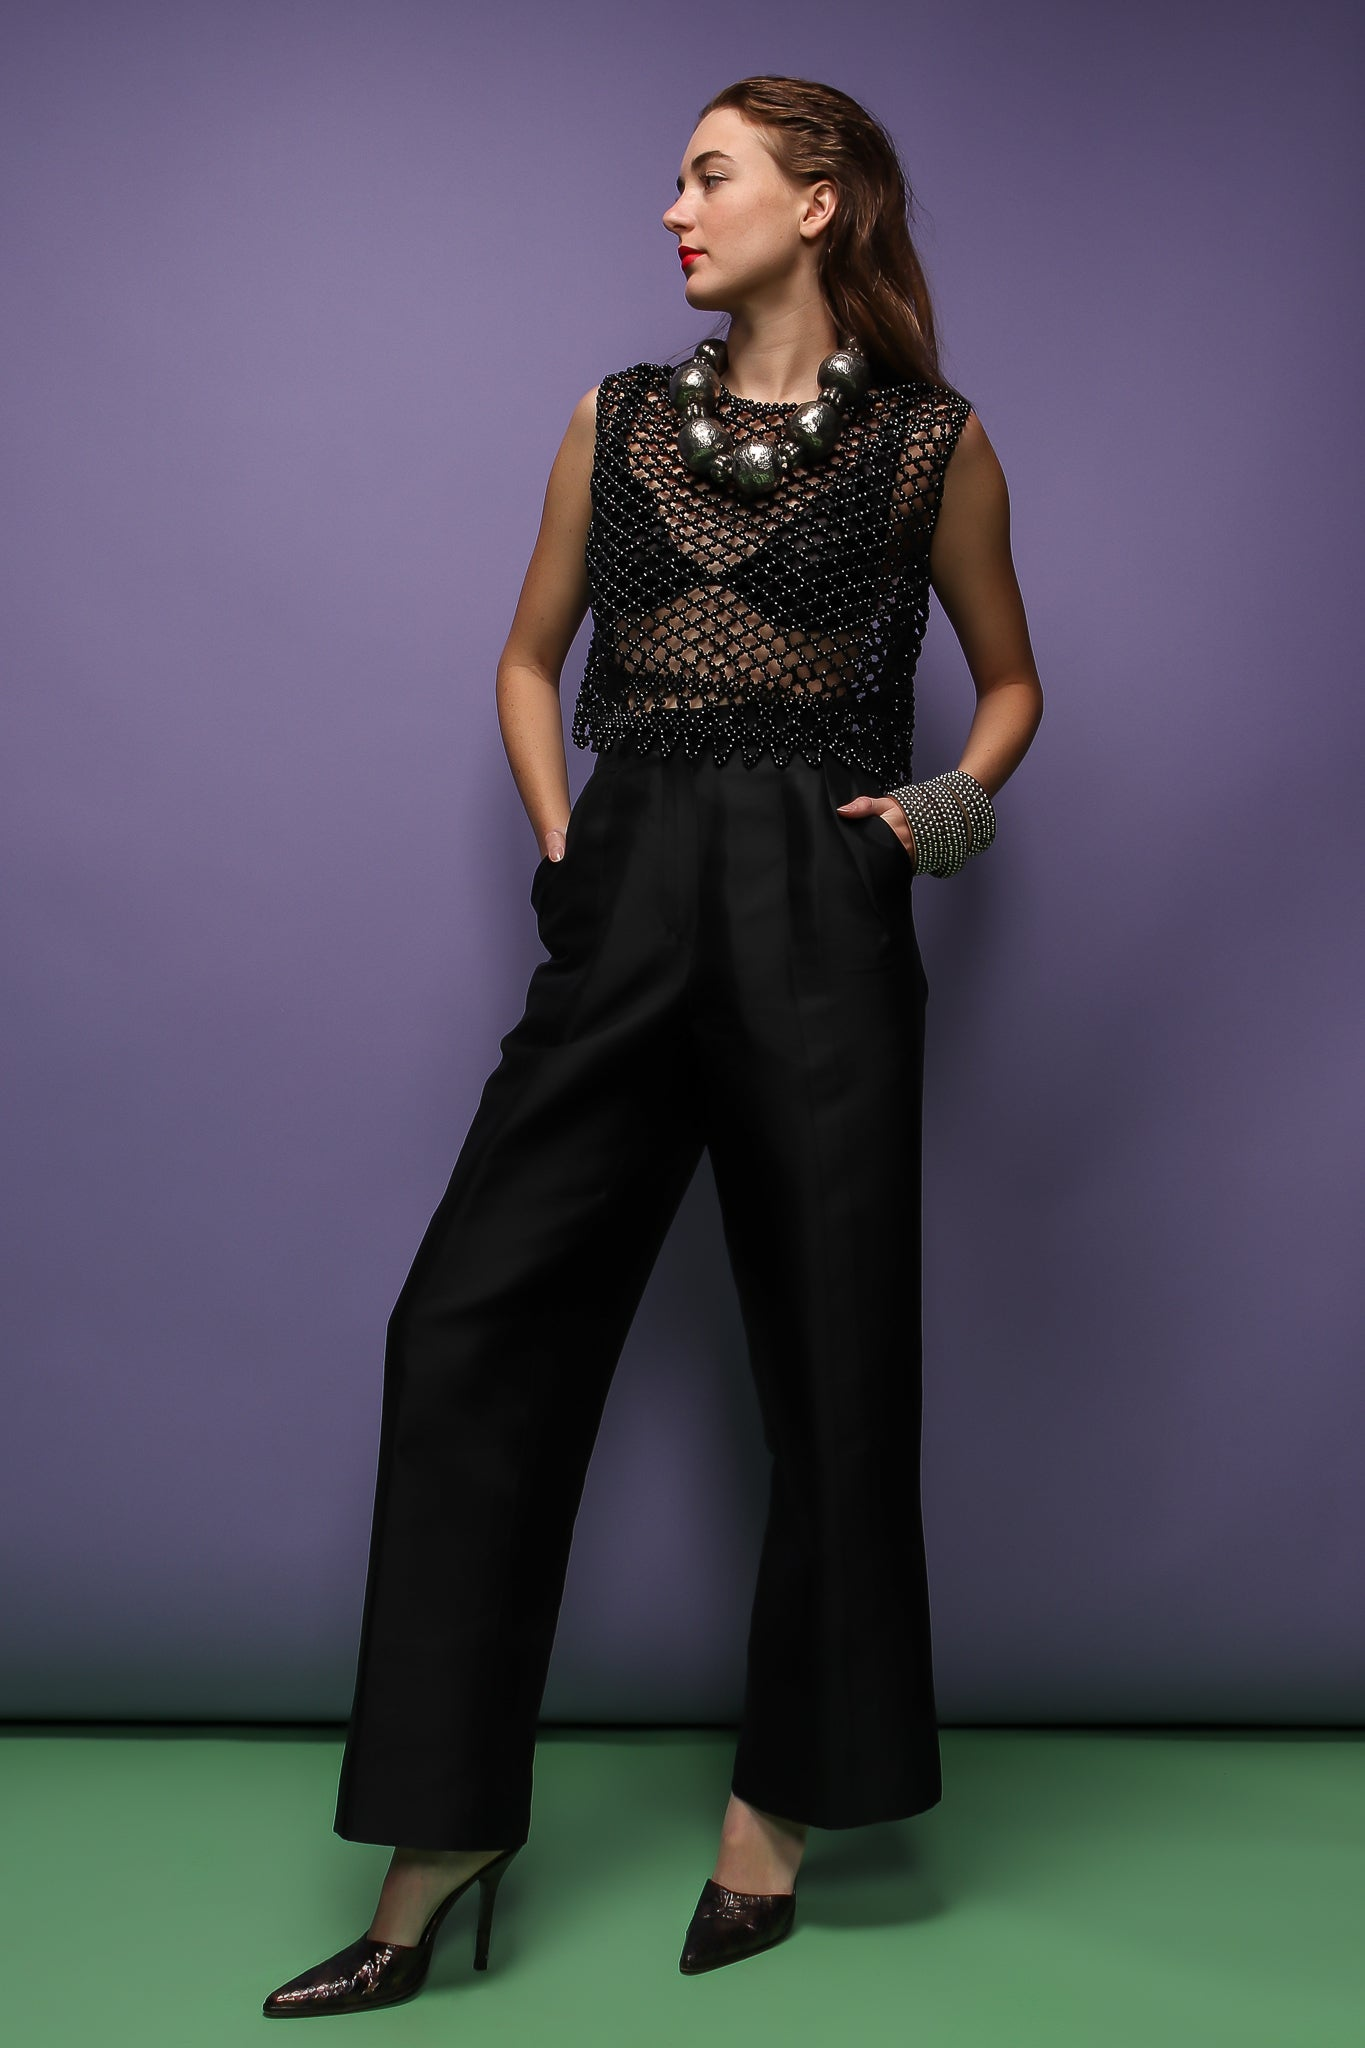 girl in black beaded top, jill sander pant, & beaded ball necklace at Recess Los Angeles